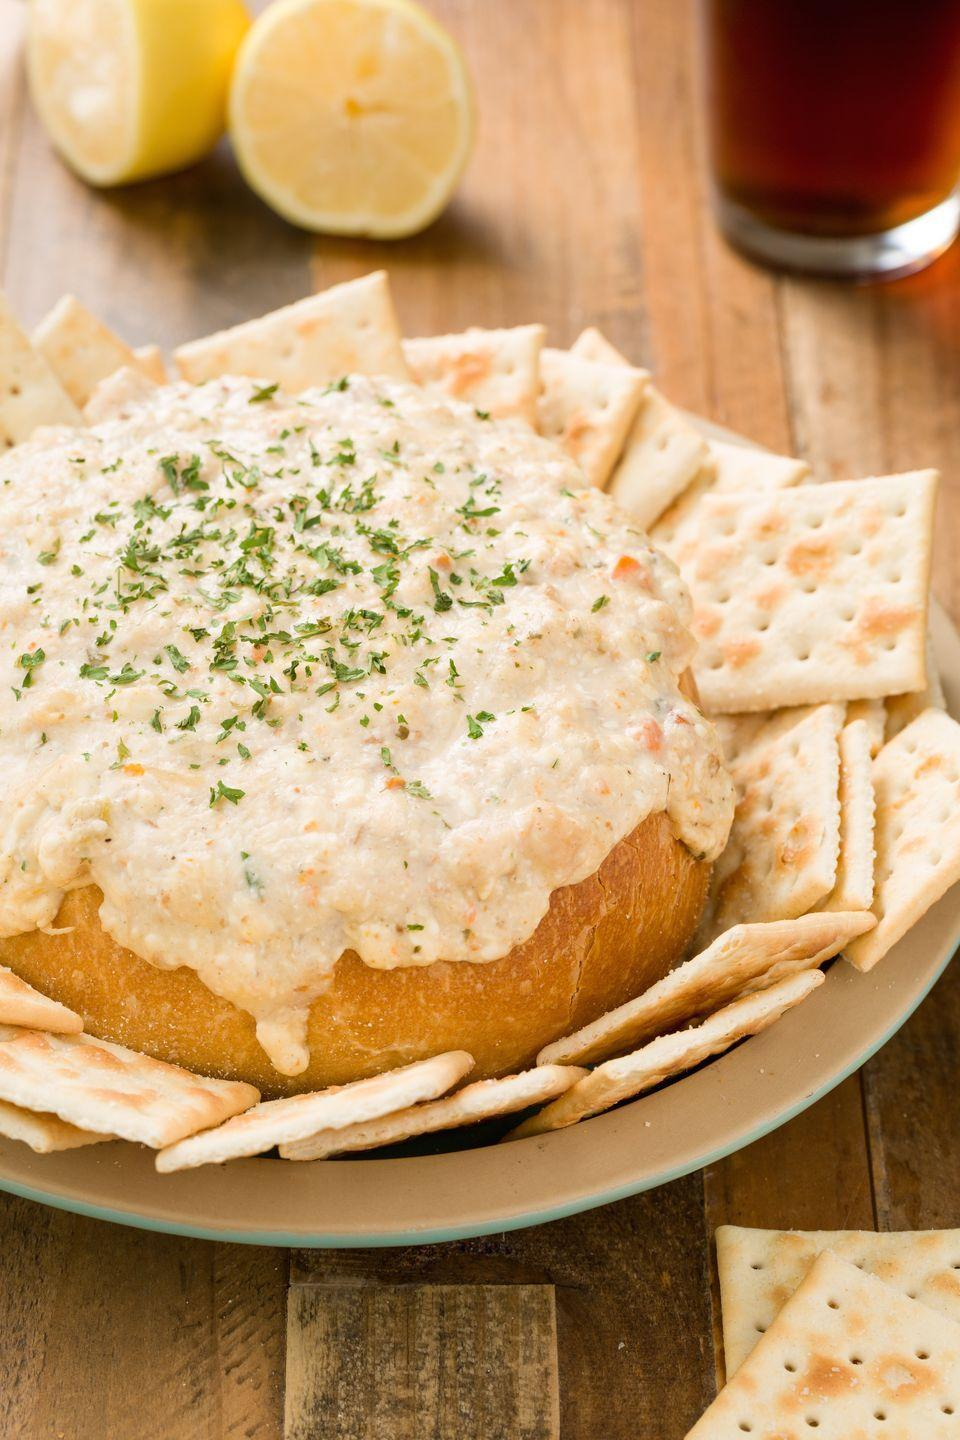 """<p>The creamy soup is obviously best enjoyed in a bread bowl to sop up the flavor. Now you can enjoy it as a dip.</p><p>Get the recipe from <a href=""""https://www.delish.com/cooking/recipe-ideas/recipes/a44544/clam-chowder-dip-in-a-bread-bowl-recipe/"""" rel=""""nofollow noopener"""" target=""""_blank"""" data-ylk=""""slk:Delish"""" class=""""link rapid-noclick-resp"""">Delish</a>.</p>"""